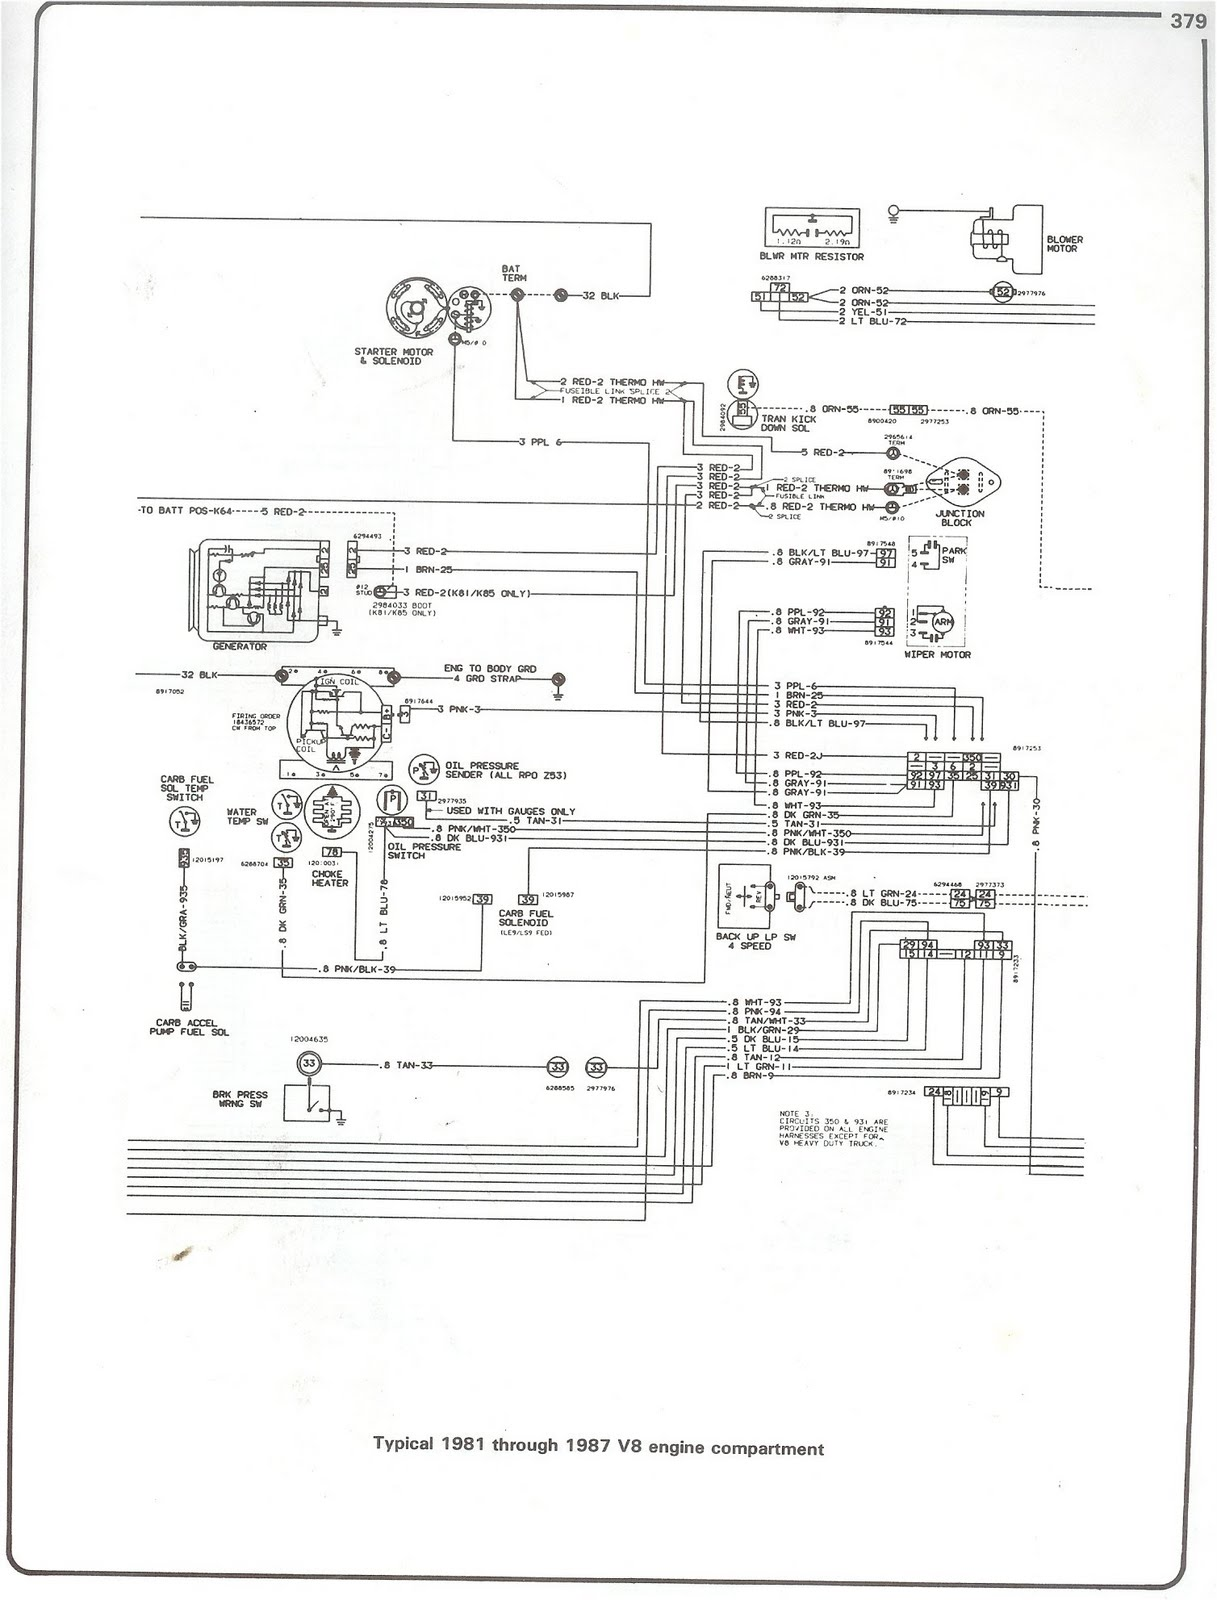 free auto wiring diagram 1981 1987 chevrolet v8 truck engine 1992 Chevy Instrument Cluster Wiring Diagram 1985 silverado wiring diagram 2000 Chevy Silverado AC Diagram 2004 Silverado Radio Wiring Diagram 2005 Silverado Radio Wiring Diagram